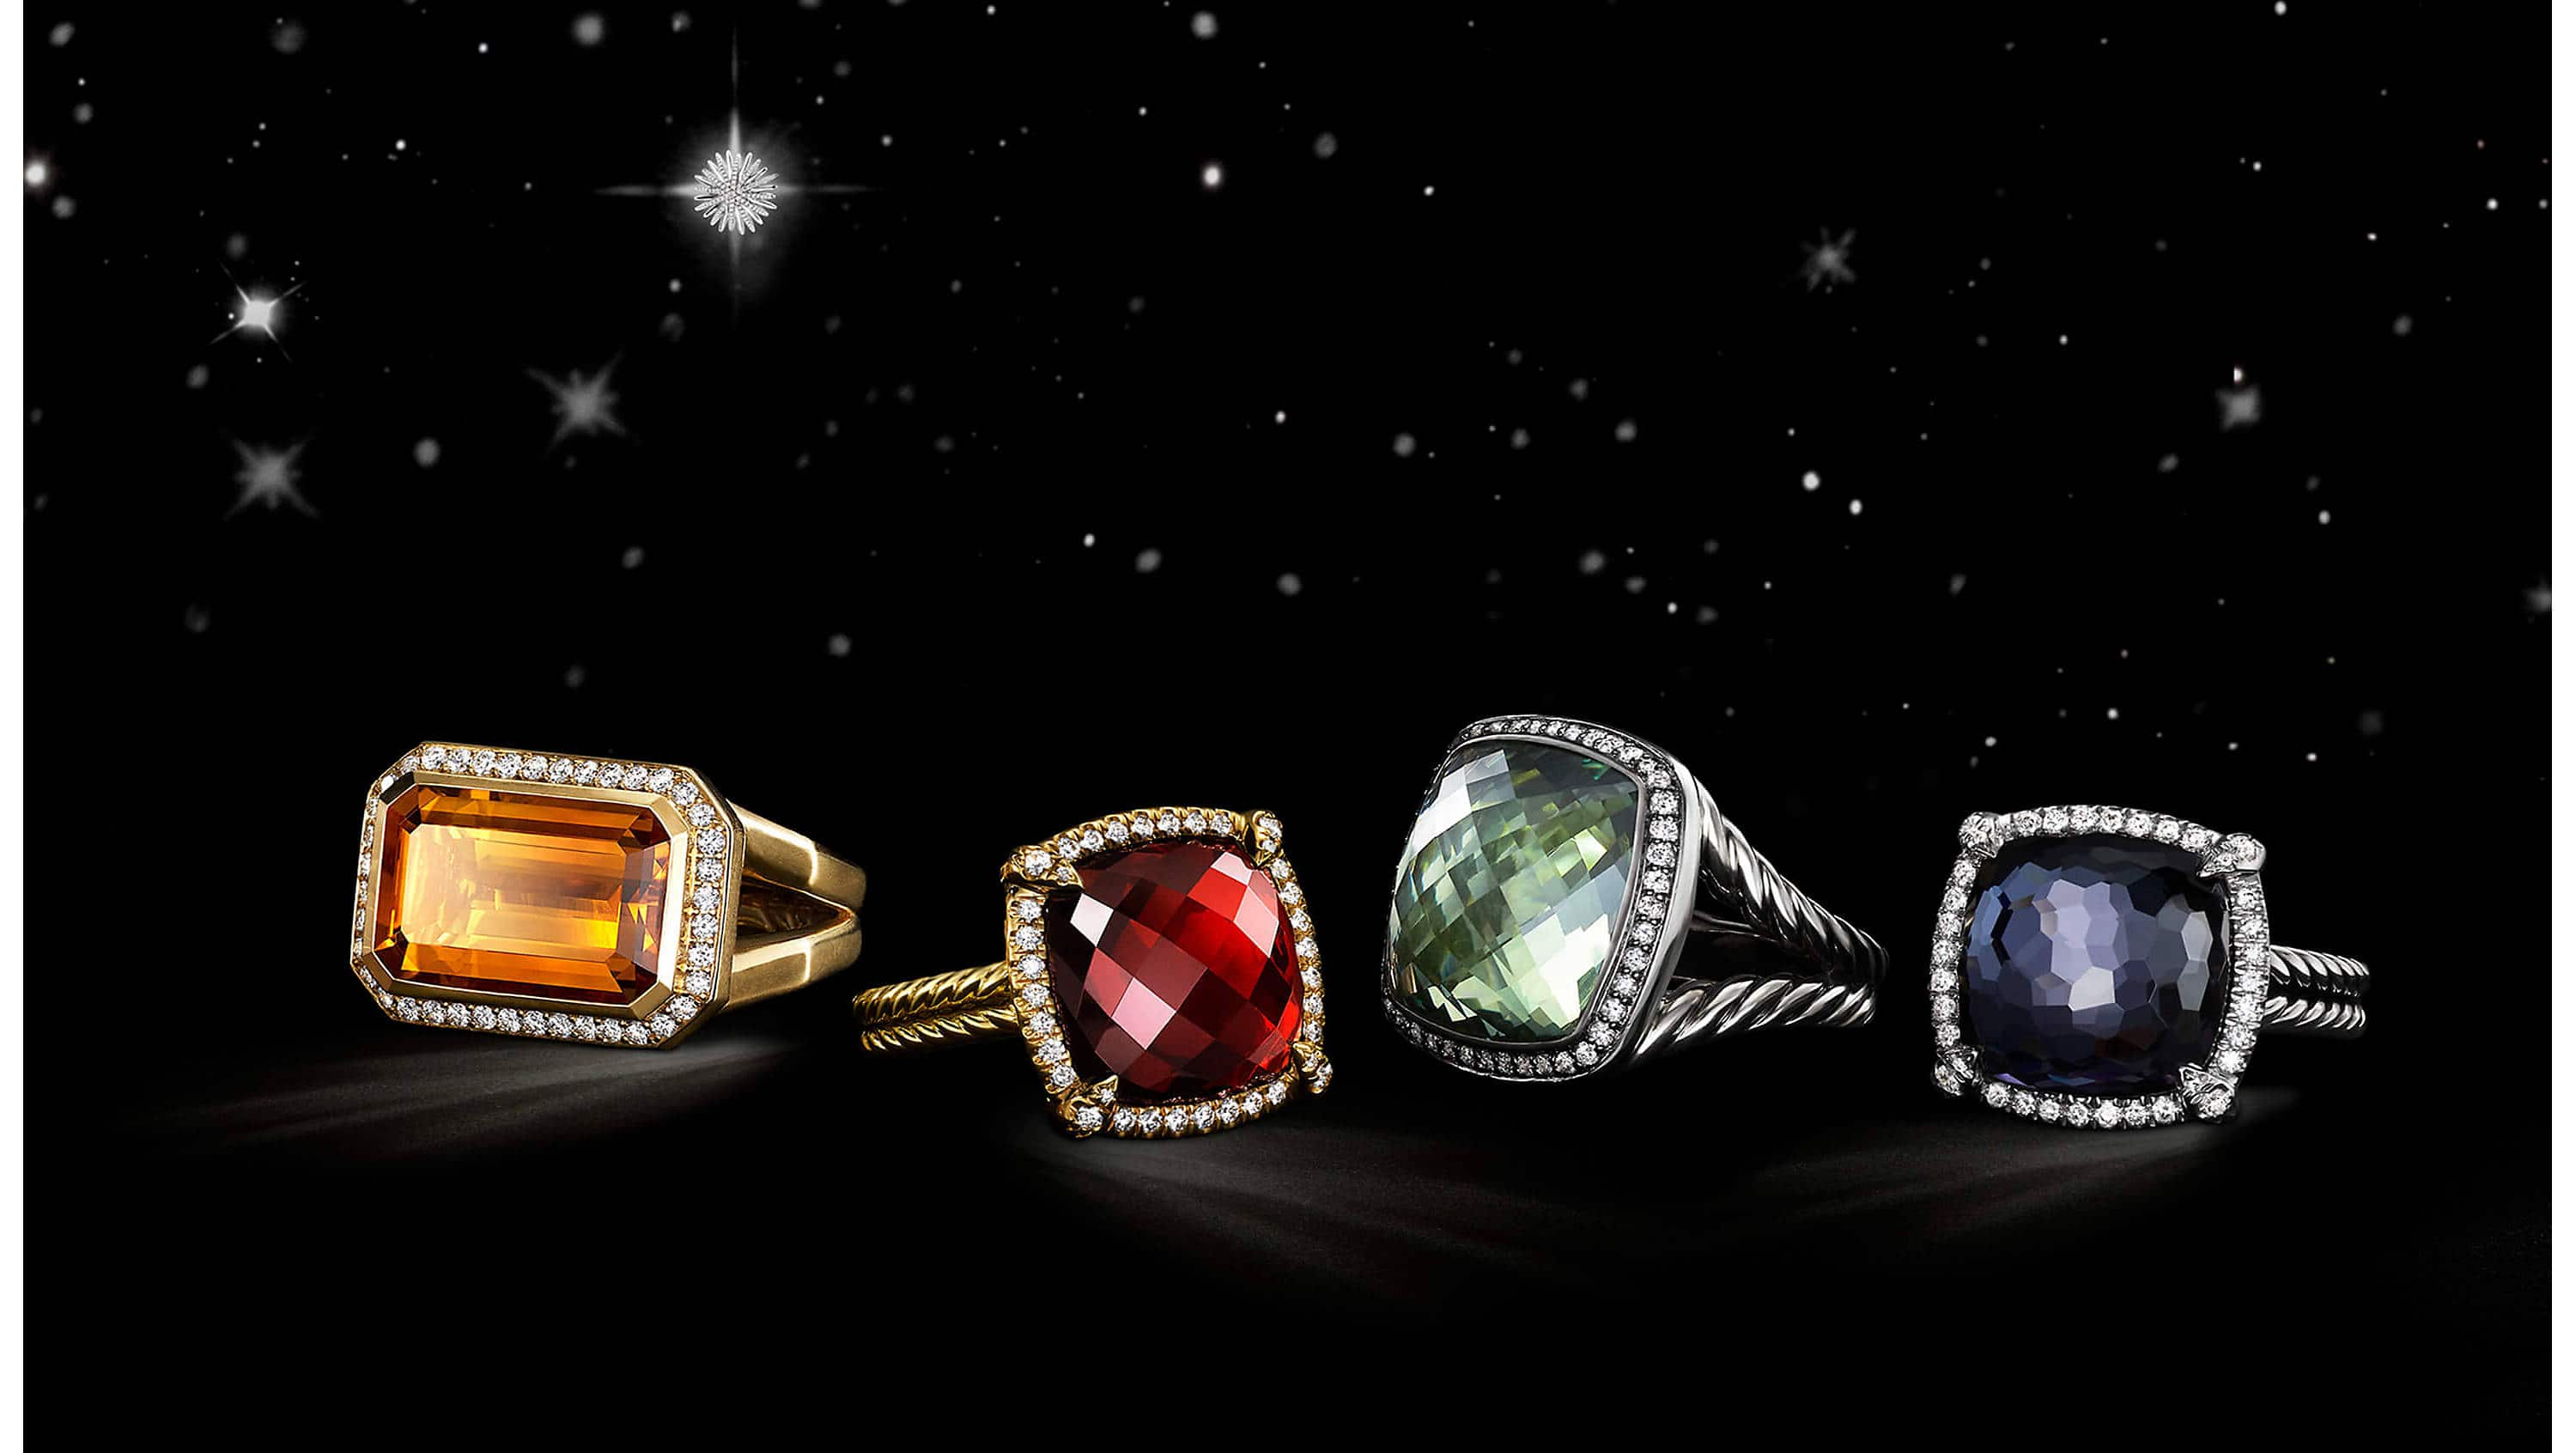 A color photo shows four David Yurman women's rings floating in a starry night sky with clouds. The rings are crafted from 18K yellow gold or sterling silver with pavé diamonds surrounding Madeira citrine, garnet, prasiolite or black orchid center stones.